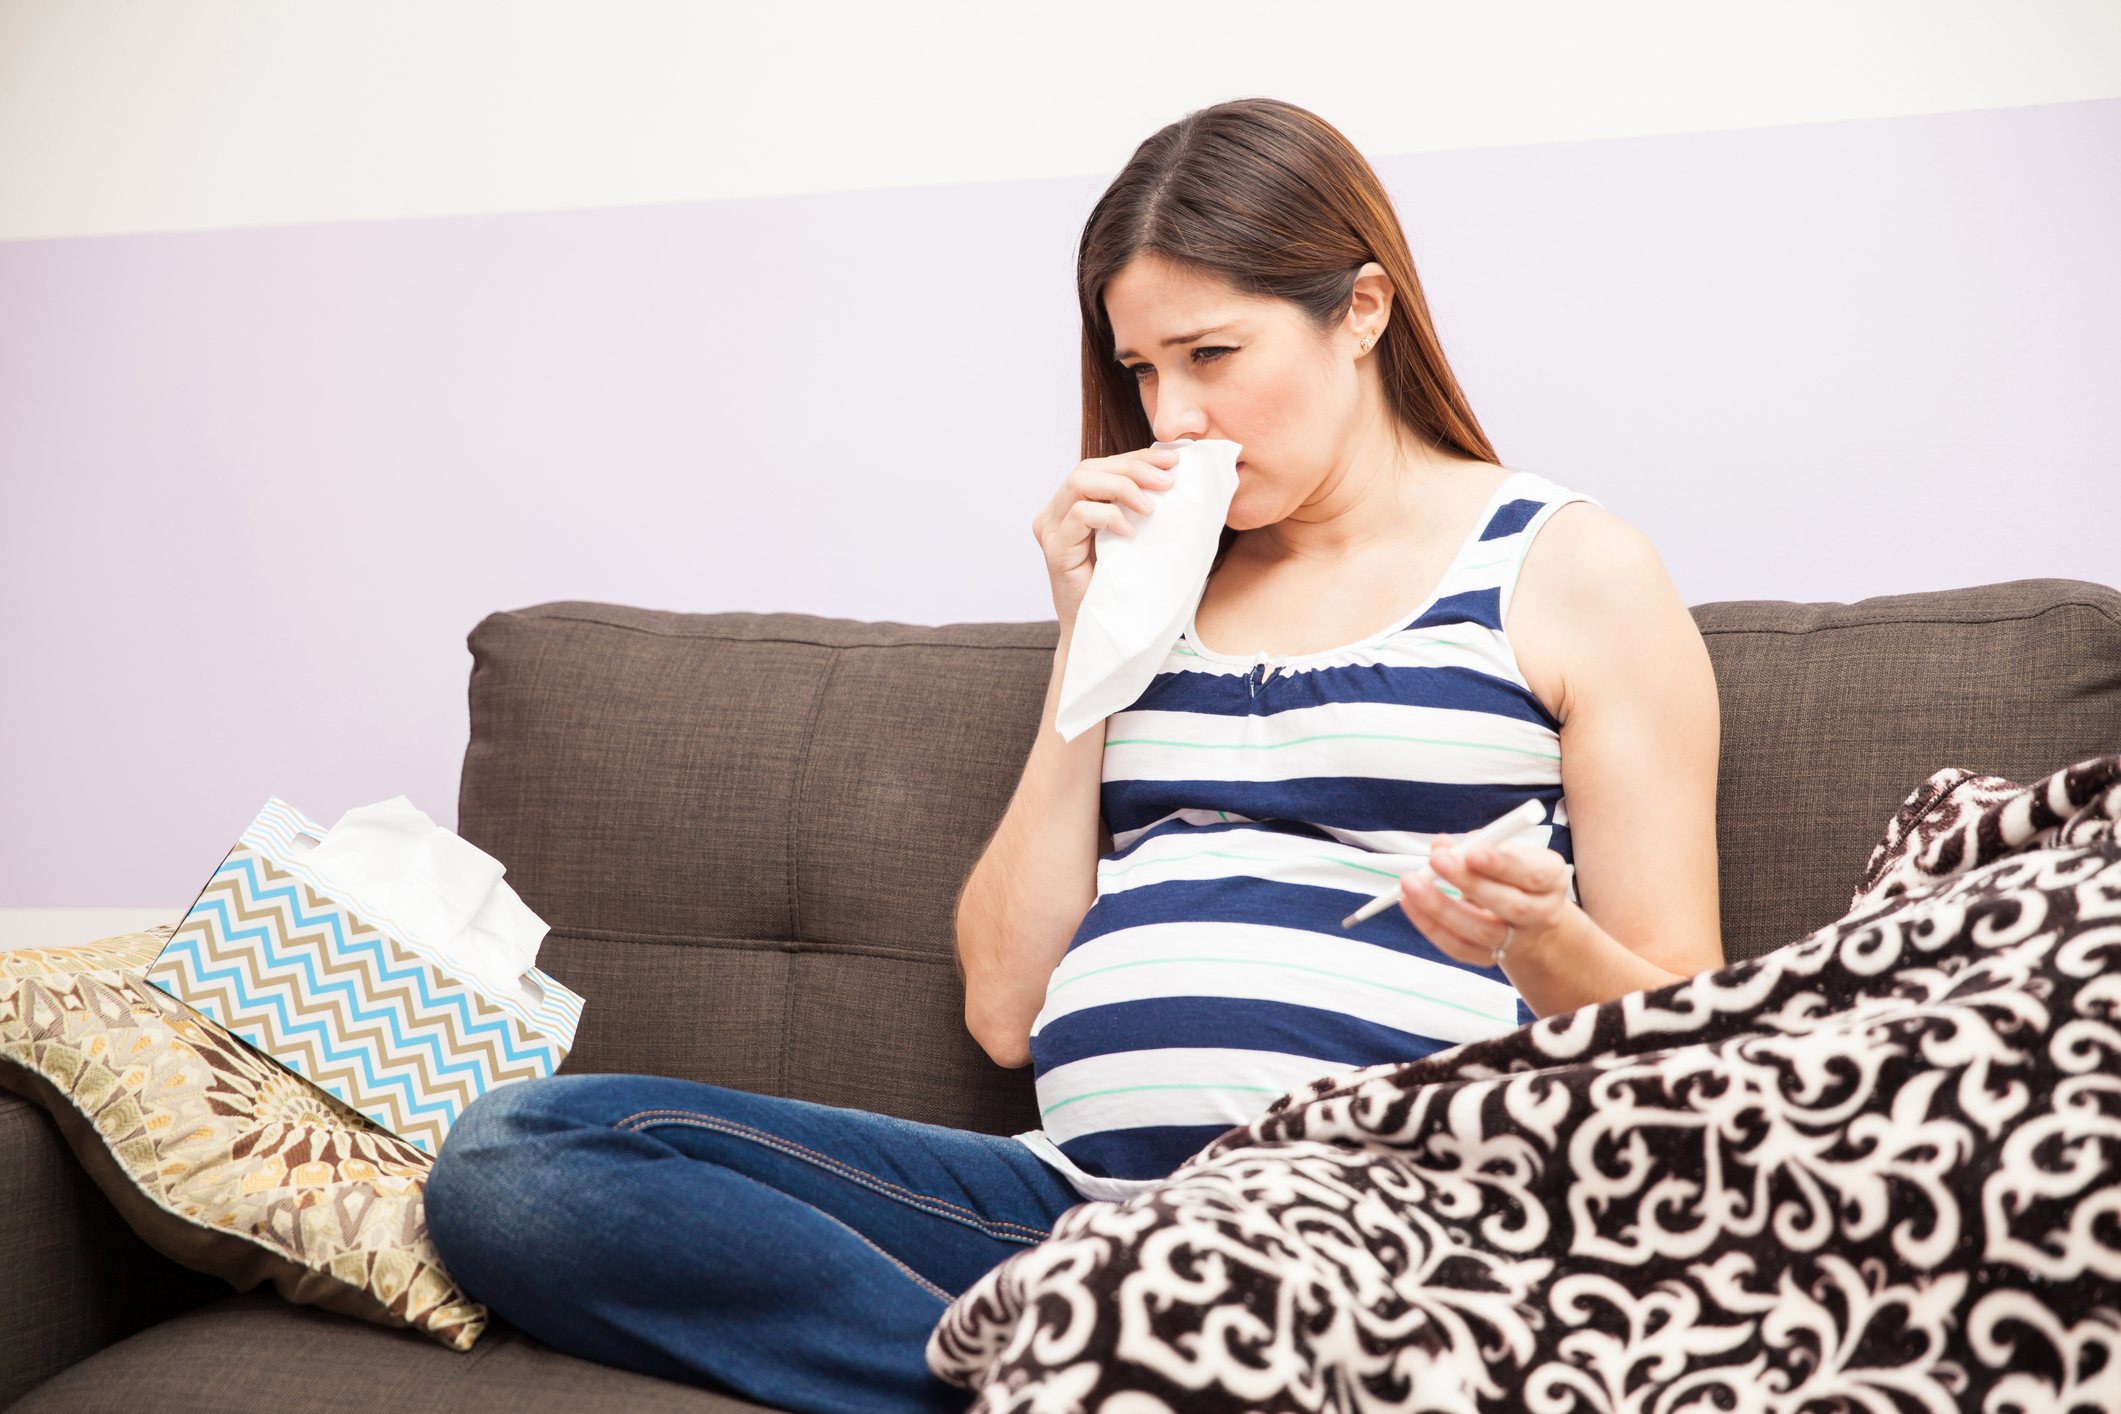 Flu shots during pregnancy - Harvard Health Blog - Harvard